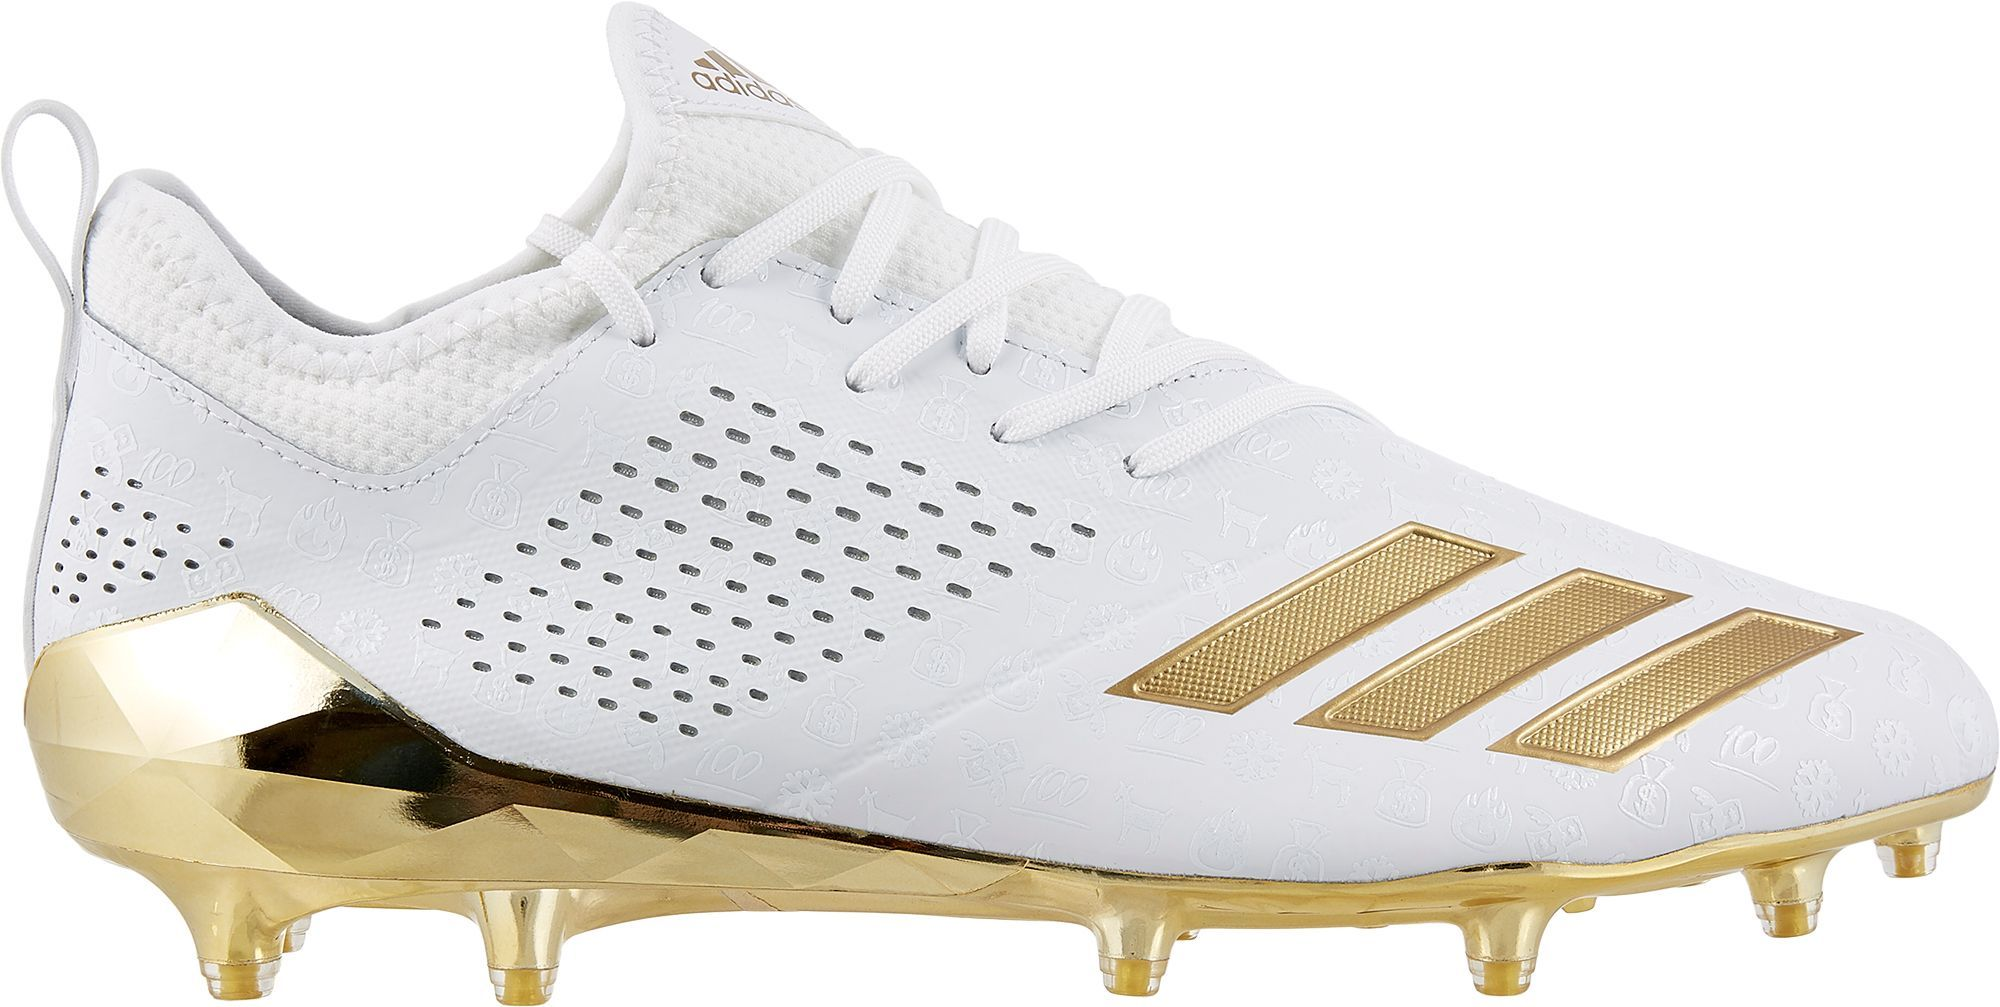 35734fe02 adidas Men's adiZERO 5-Star 7.0 adiMoji Pack Football Cleats, Size: 12.0,  White